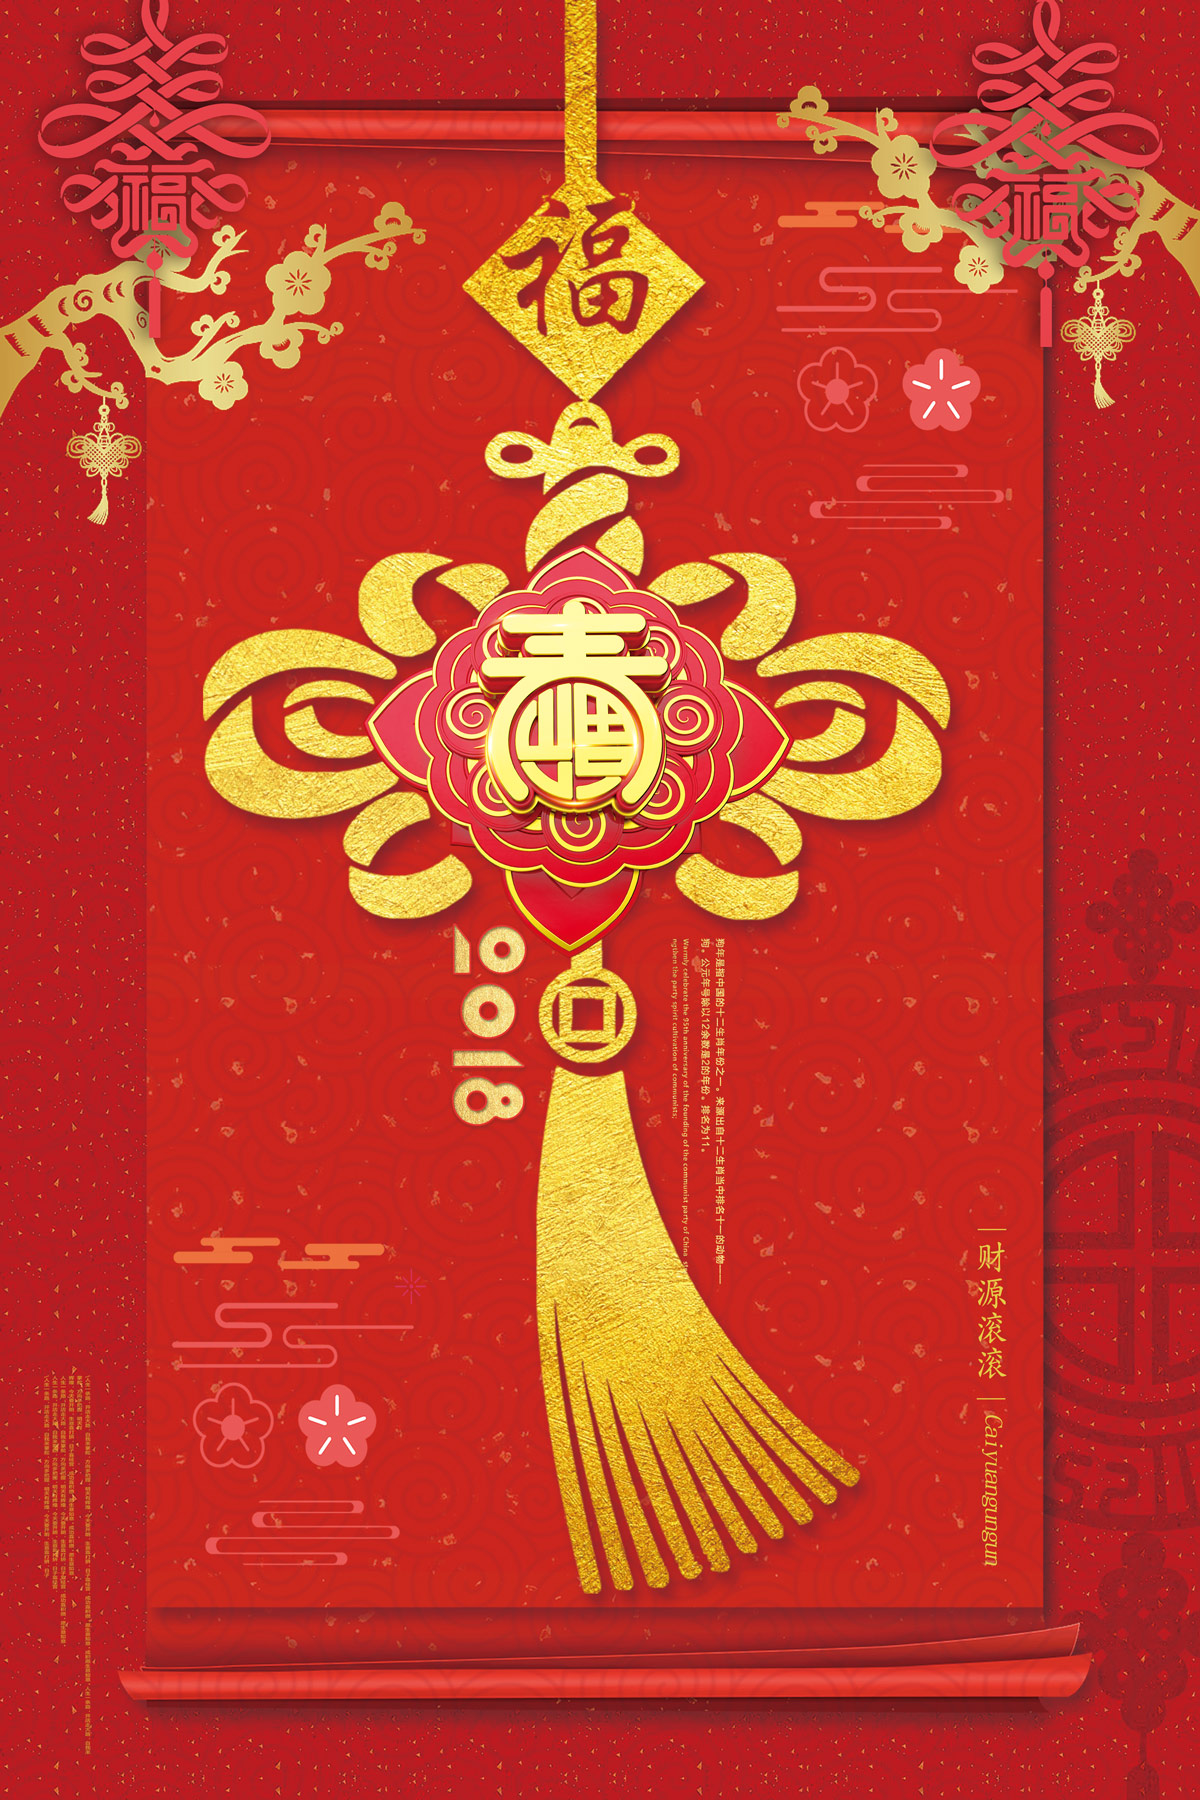 Beautiful Chinese knot Chinese New Year poster design. PSD File Free Download